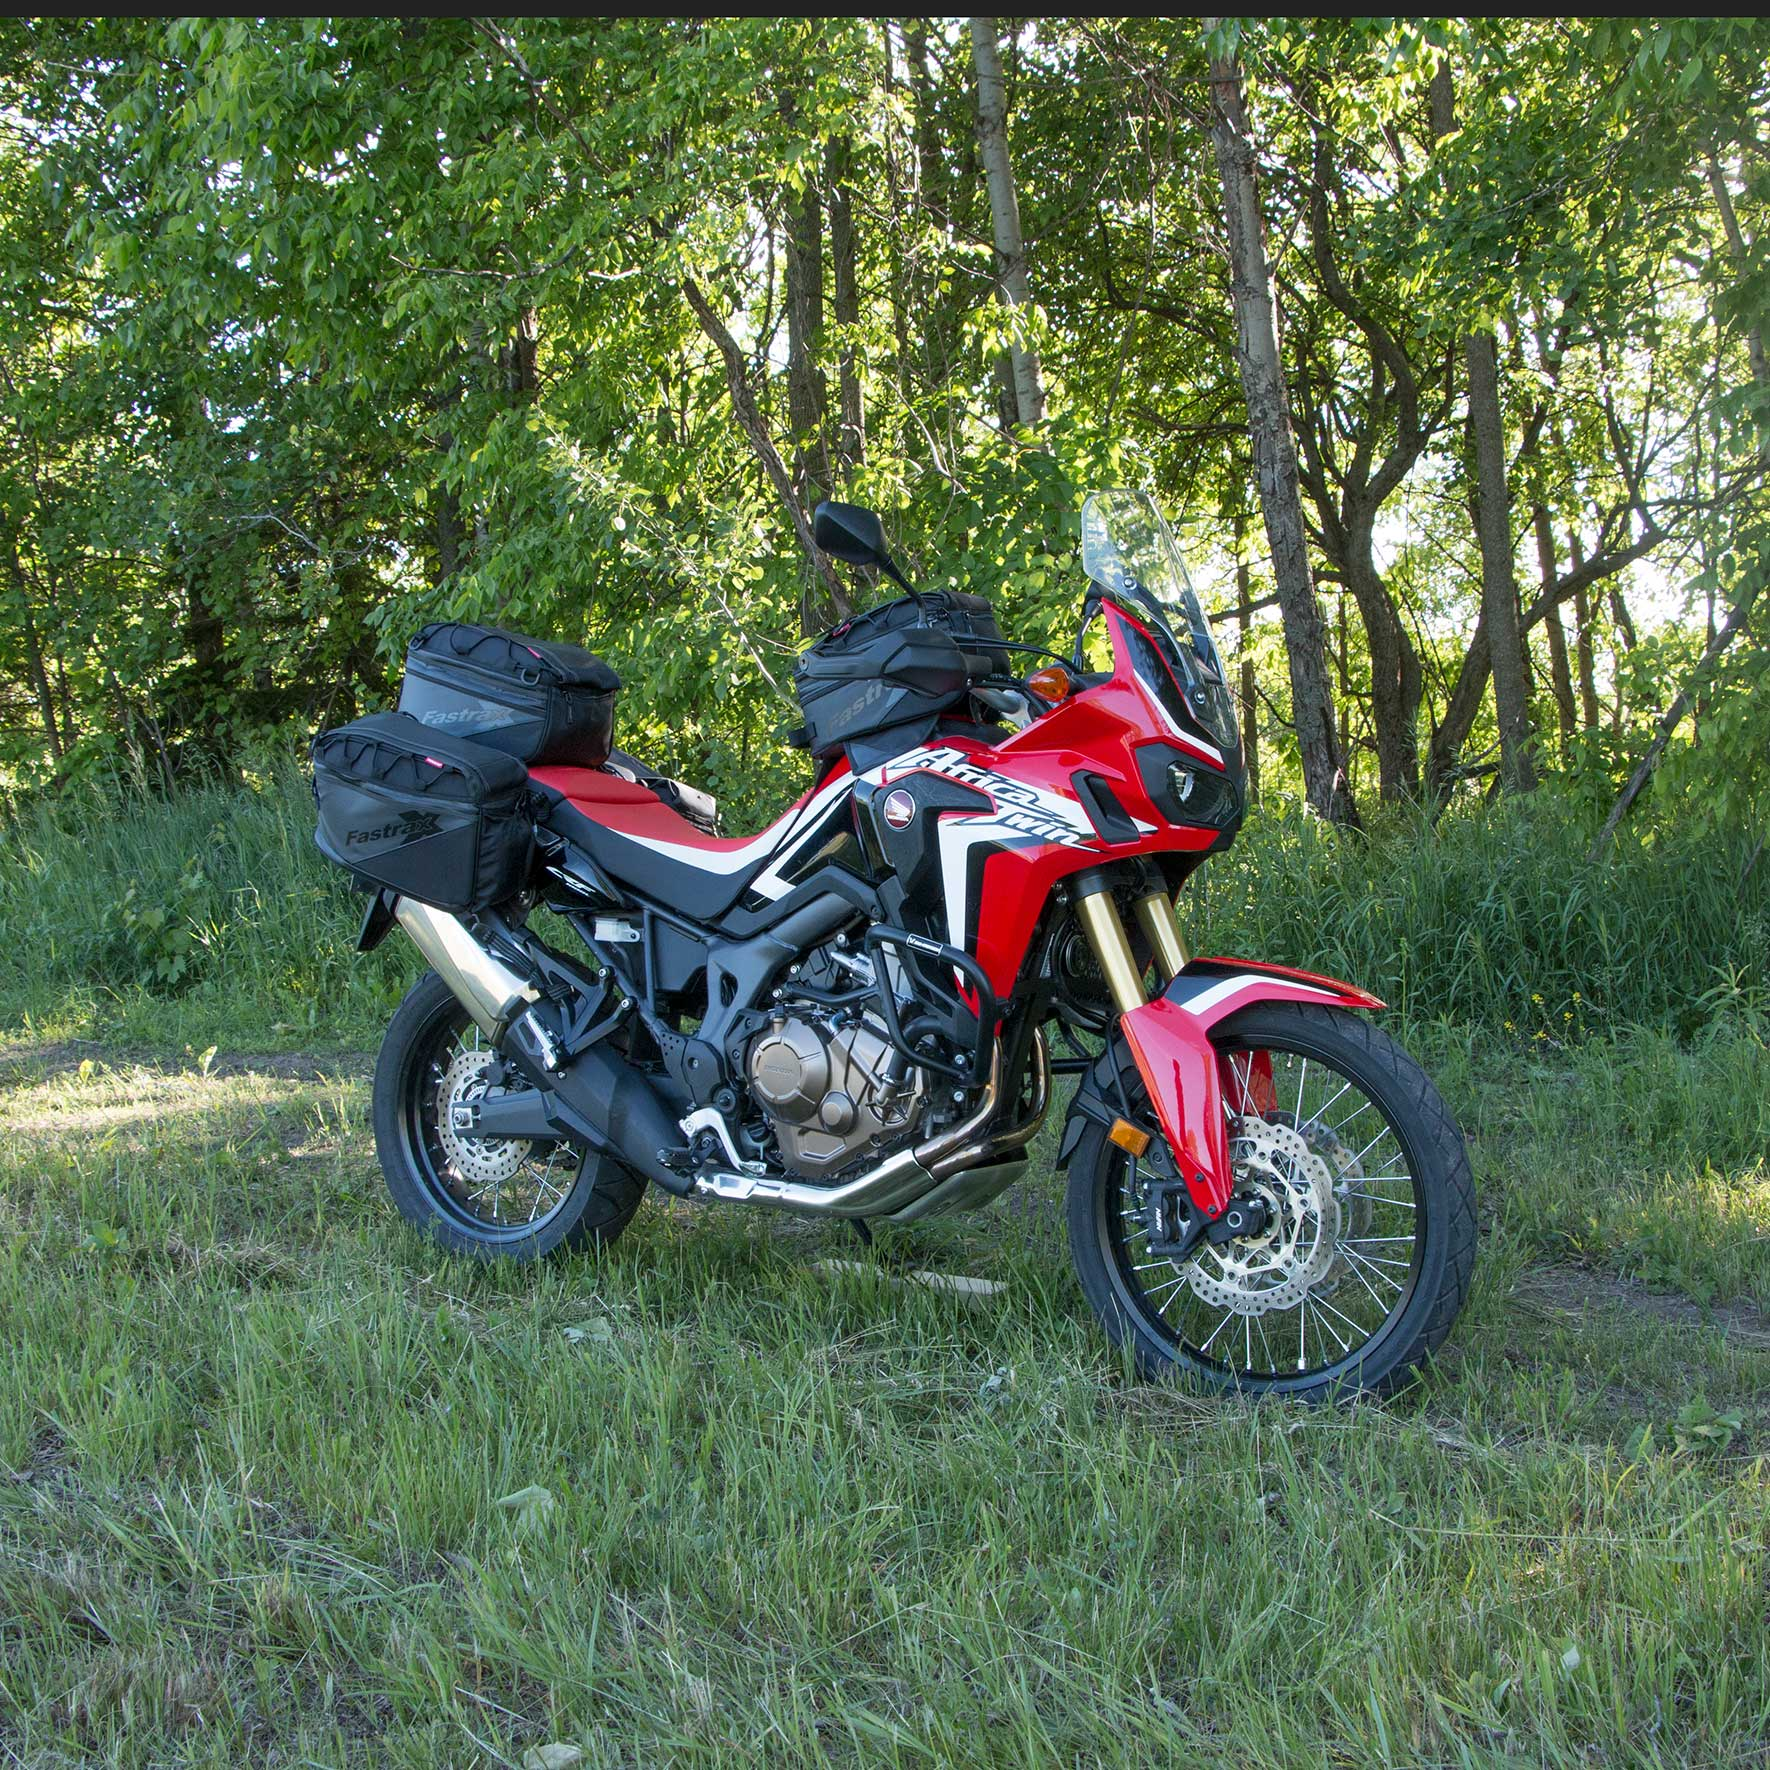 Dowco Fastrax Tank Bag on a Honda Africa Twin Motorcycle